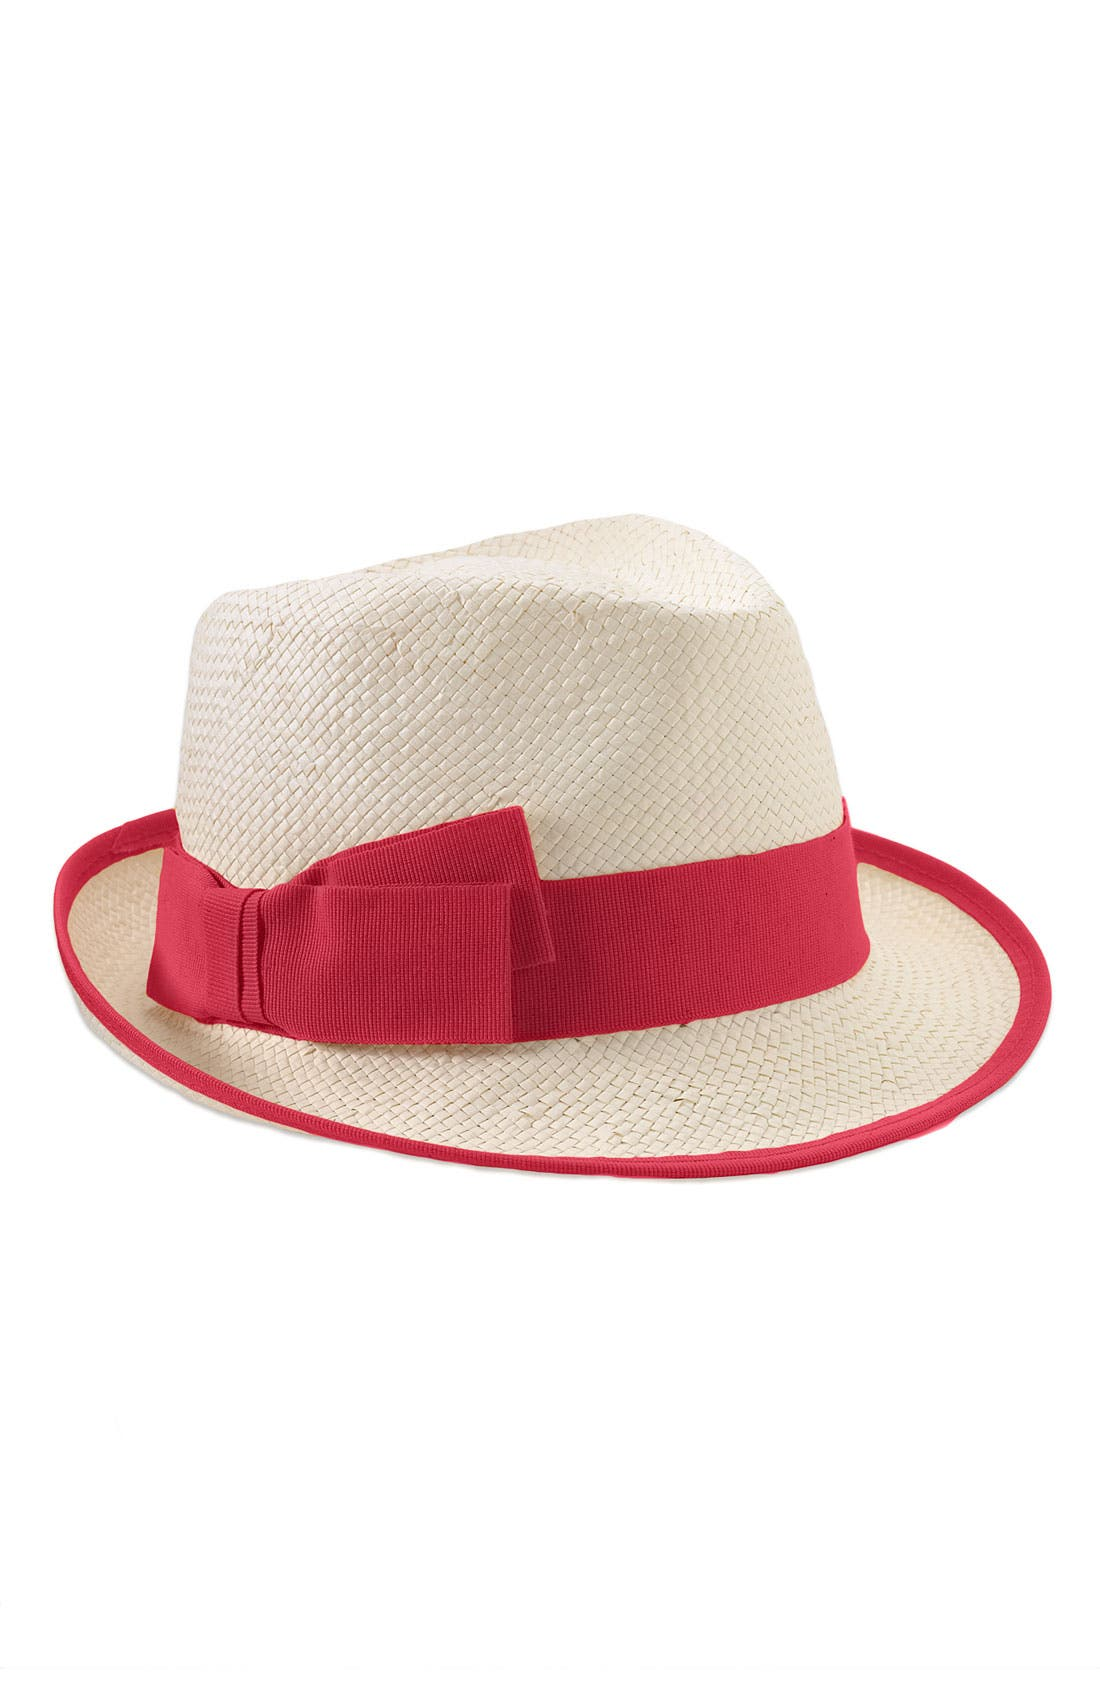 Alternate Image 1 Selected - Nordstrom Grosgrain Border Straw Fedora